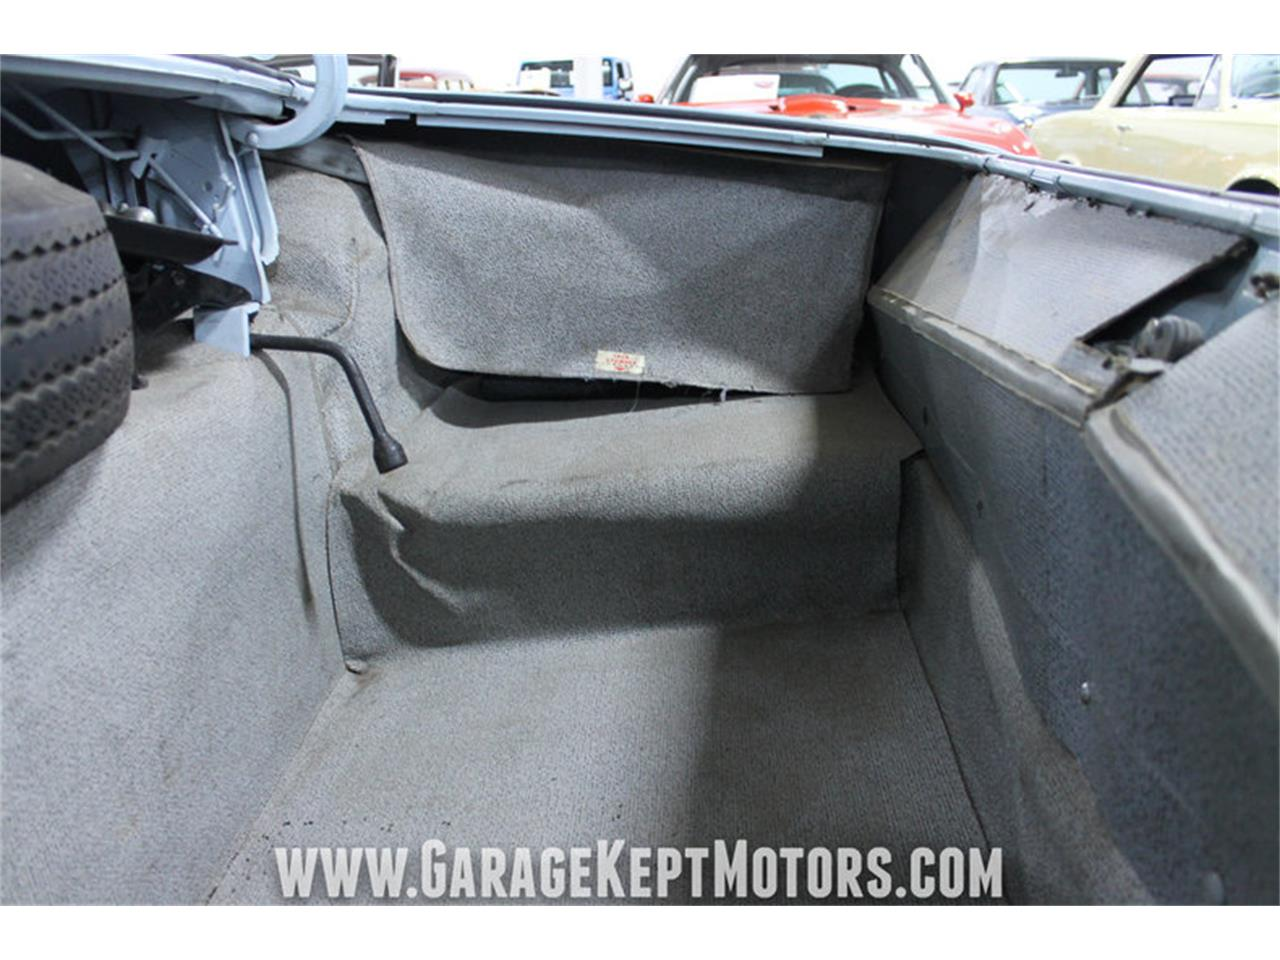 Large Picture of '67 Ford Thunderbird 2-Door Landau located in Michigan - $11,900.00 Offered by Garage Kept Motors - LU7P